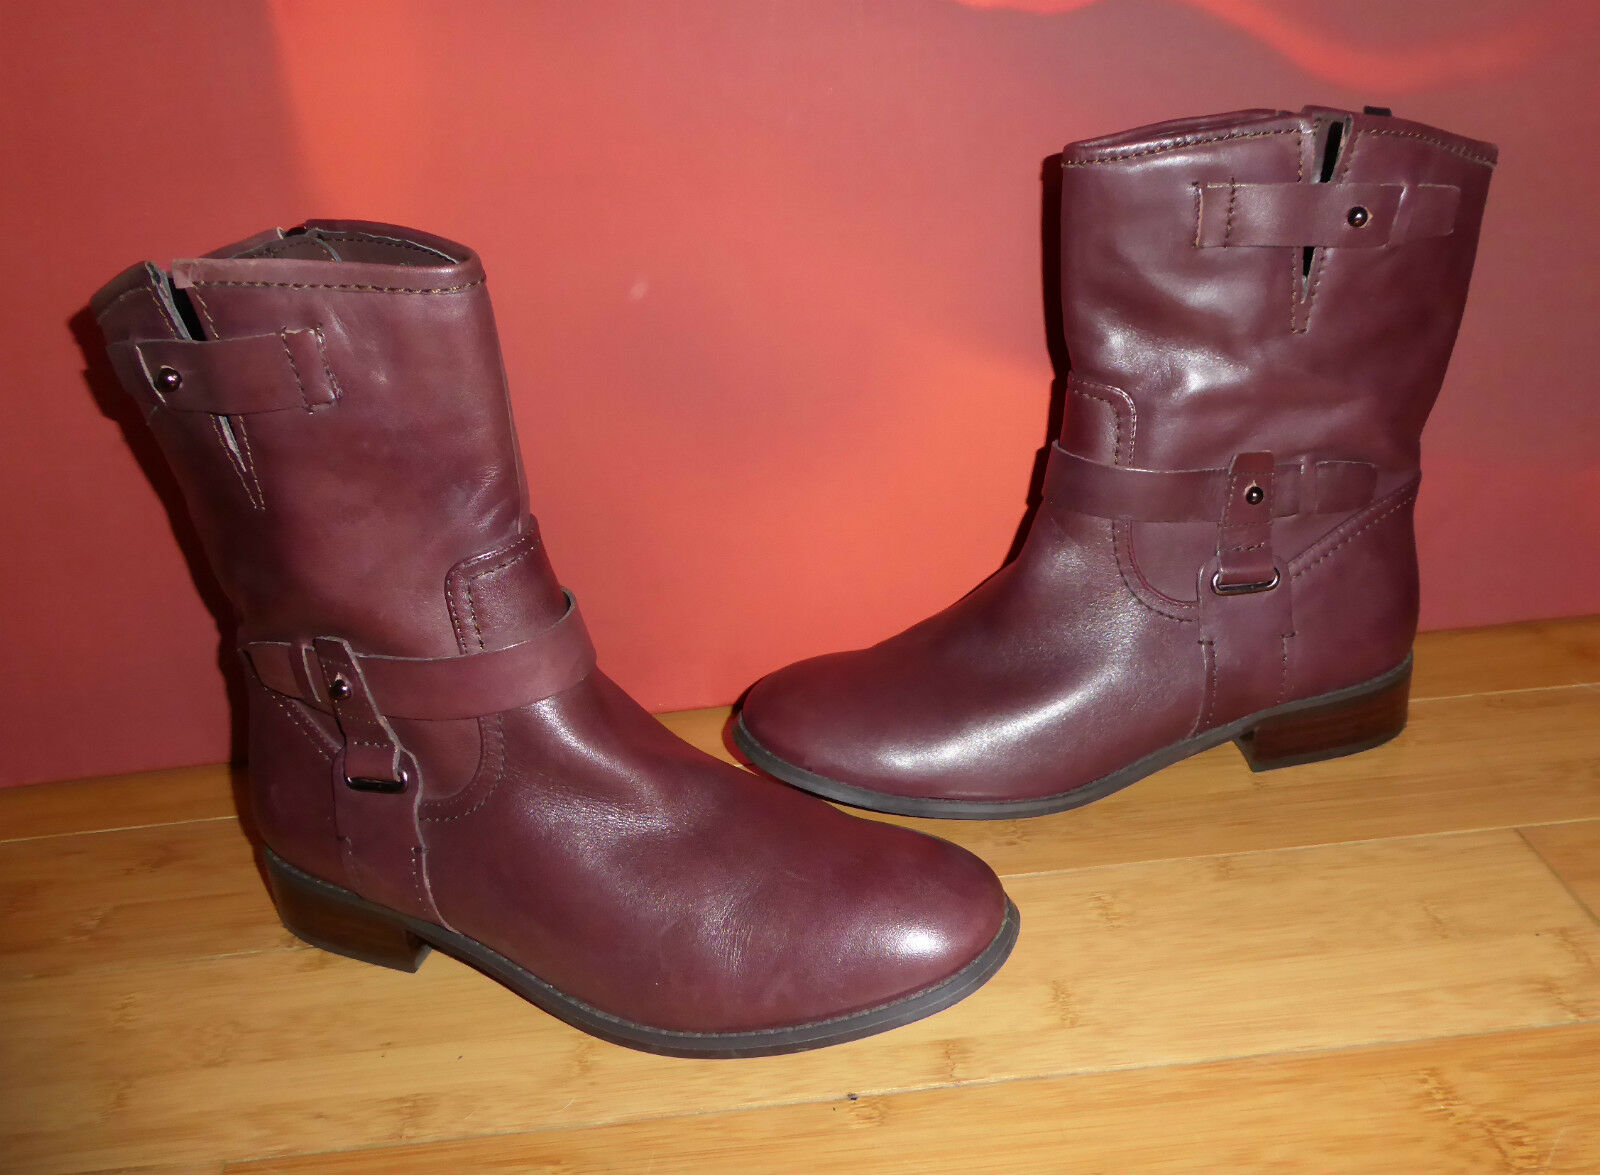 46 SUPERB AUTOGRAPH OXBLOOD LEATHER  ANKLE  BOOTS UK 7.5